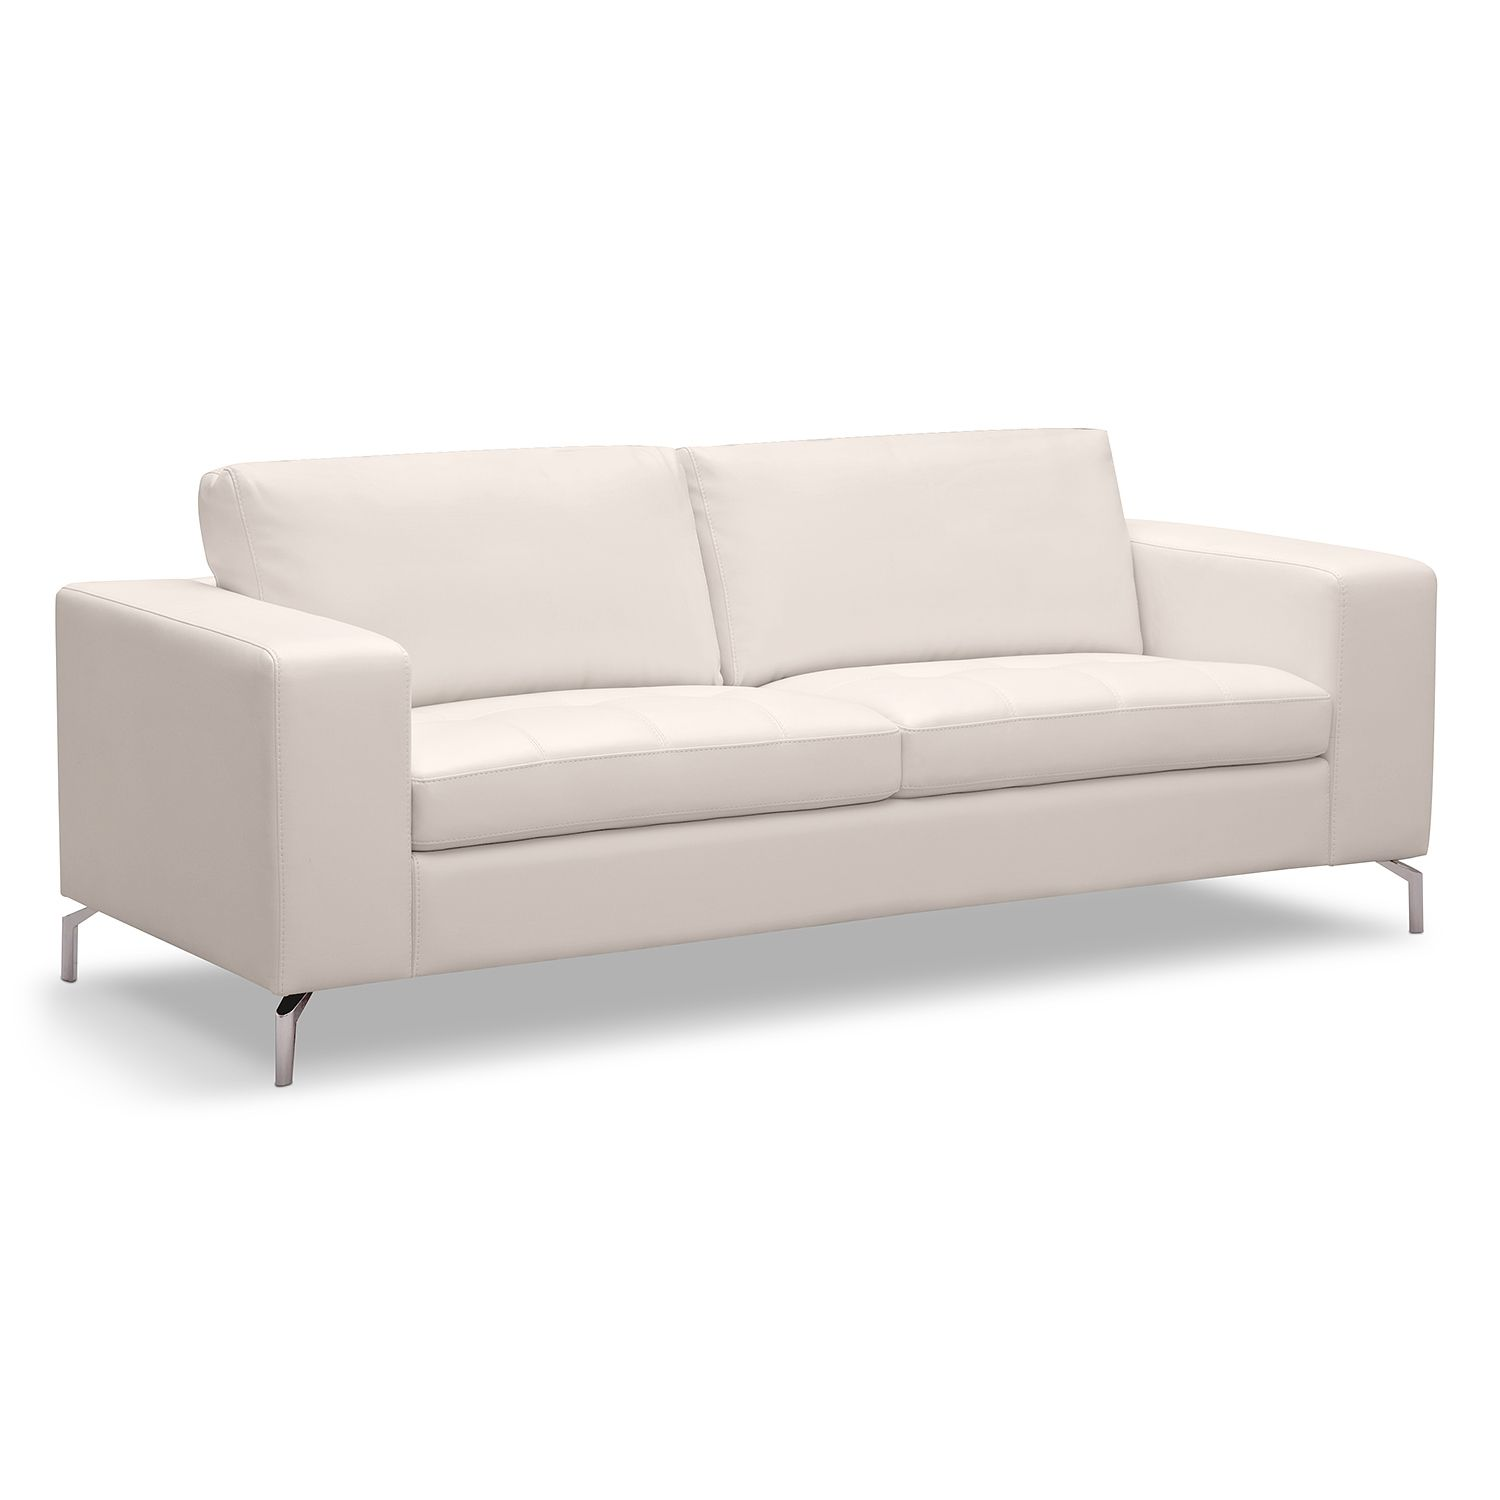 Nice Value City Sectional Sofa Good Value City Sectional Sofa 97 With Additional Sofa D Leather Living Room Furniture Sectional Furniture Living Room Leather